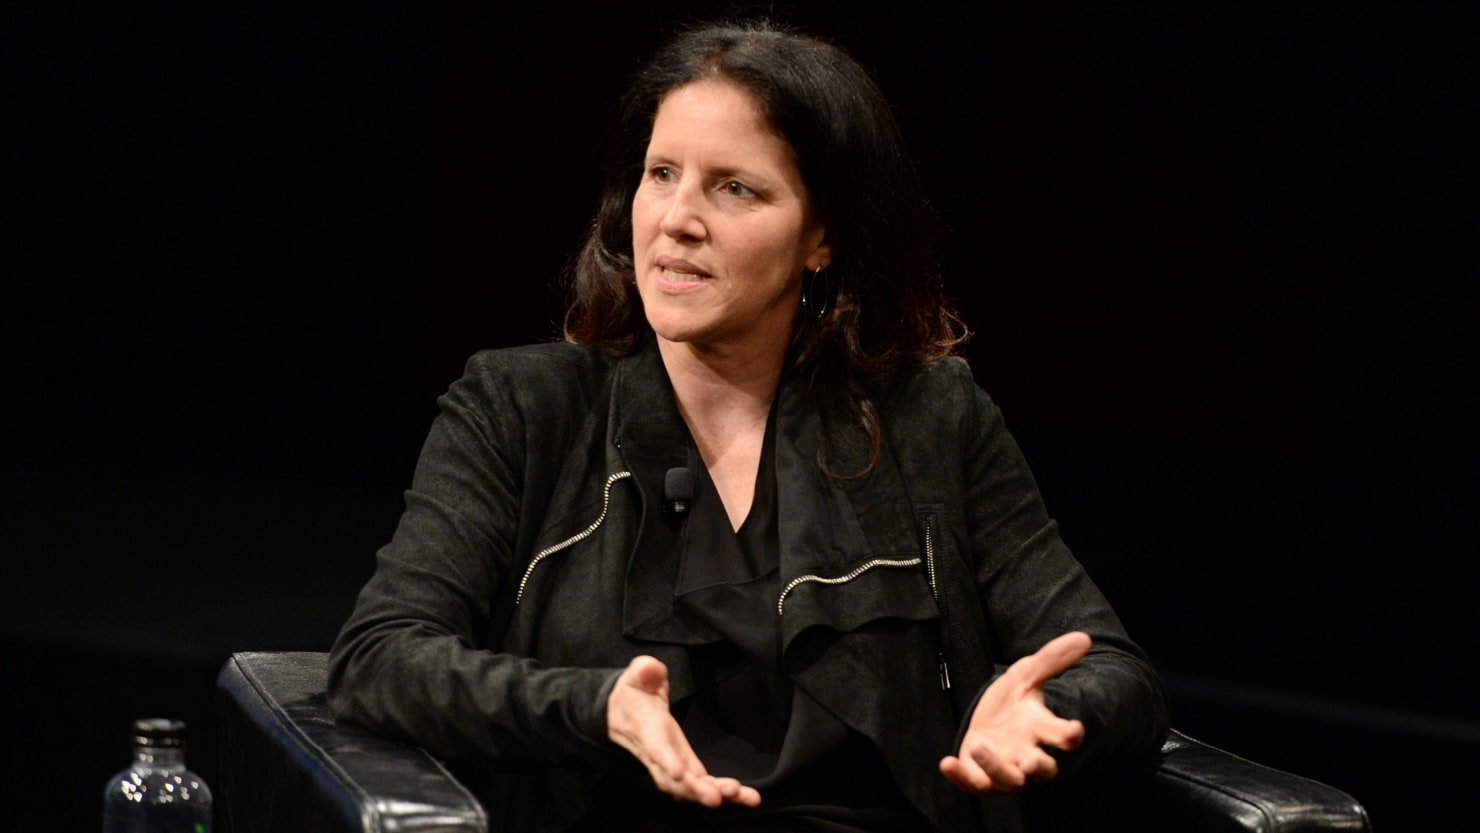 Laura Poitras 'Sickened' By Layoffs at The Intercept